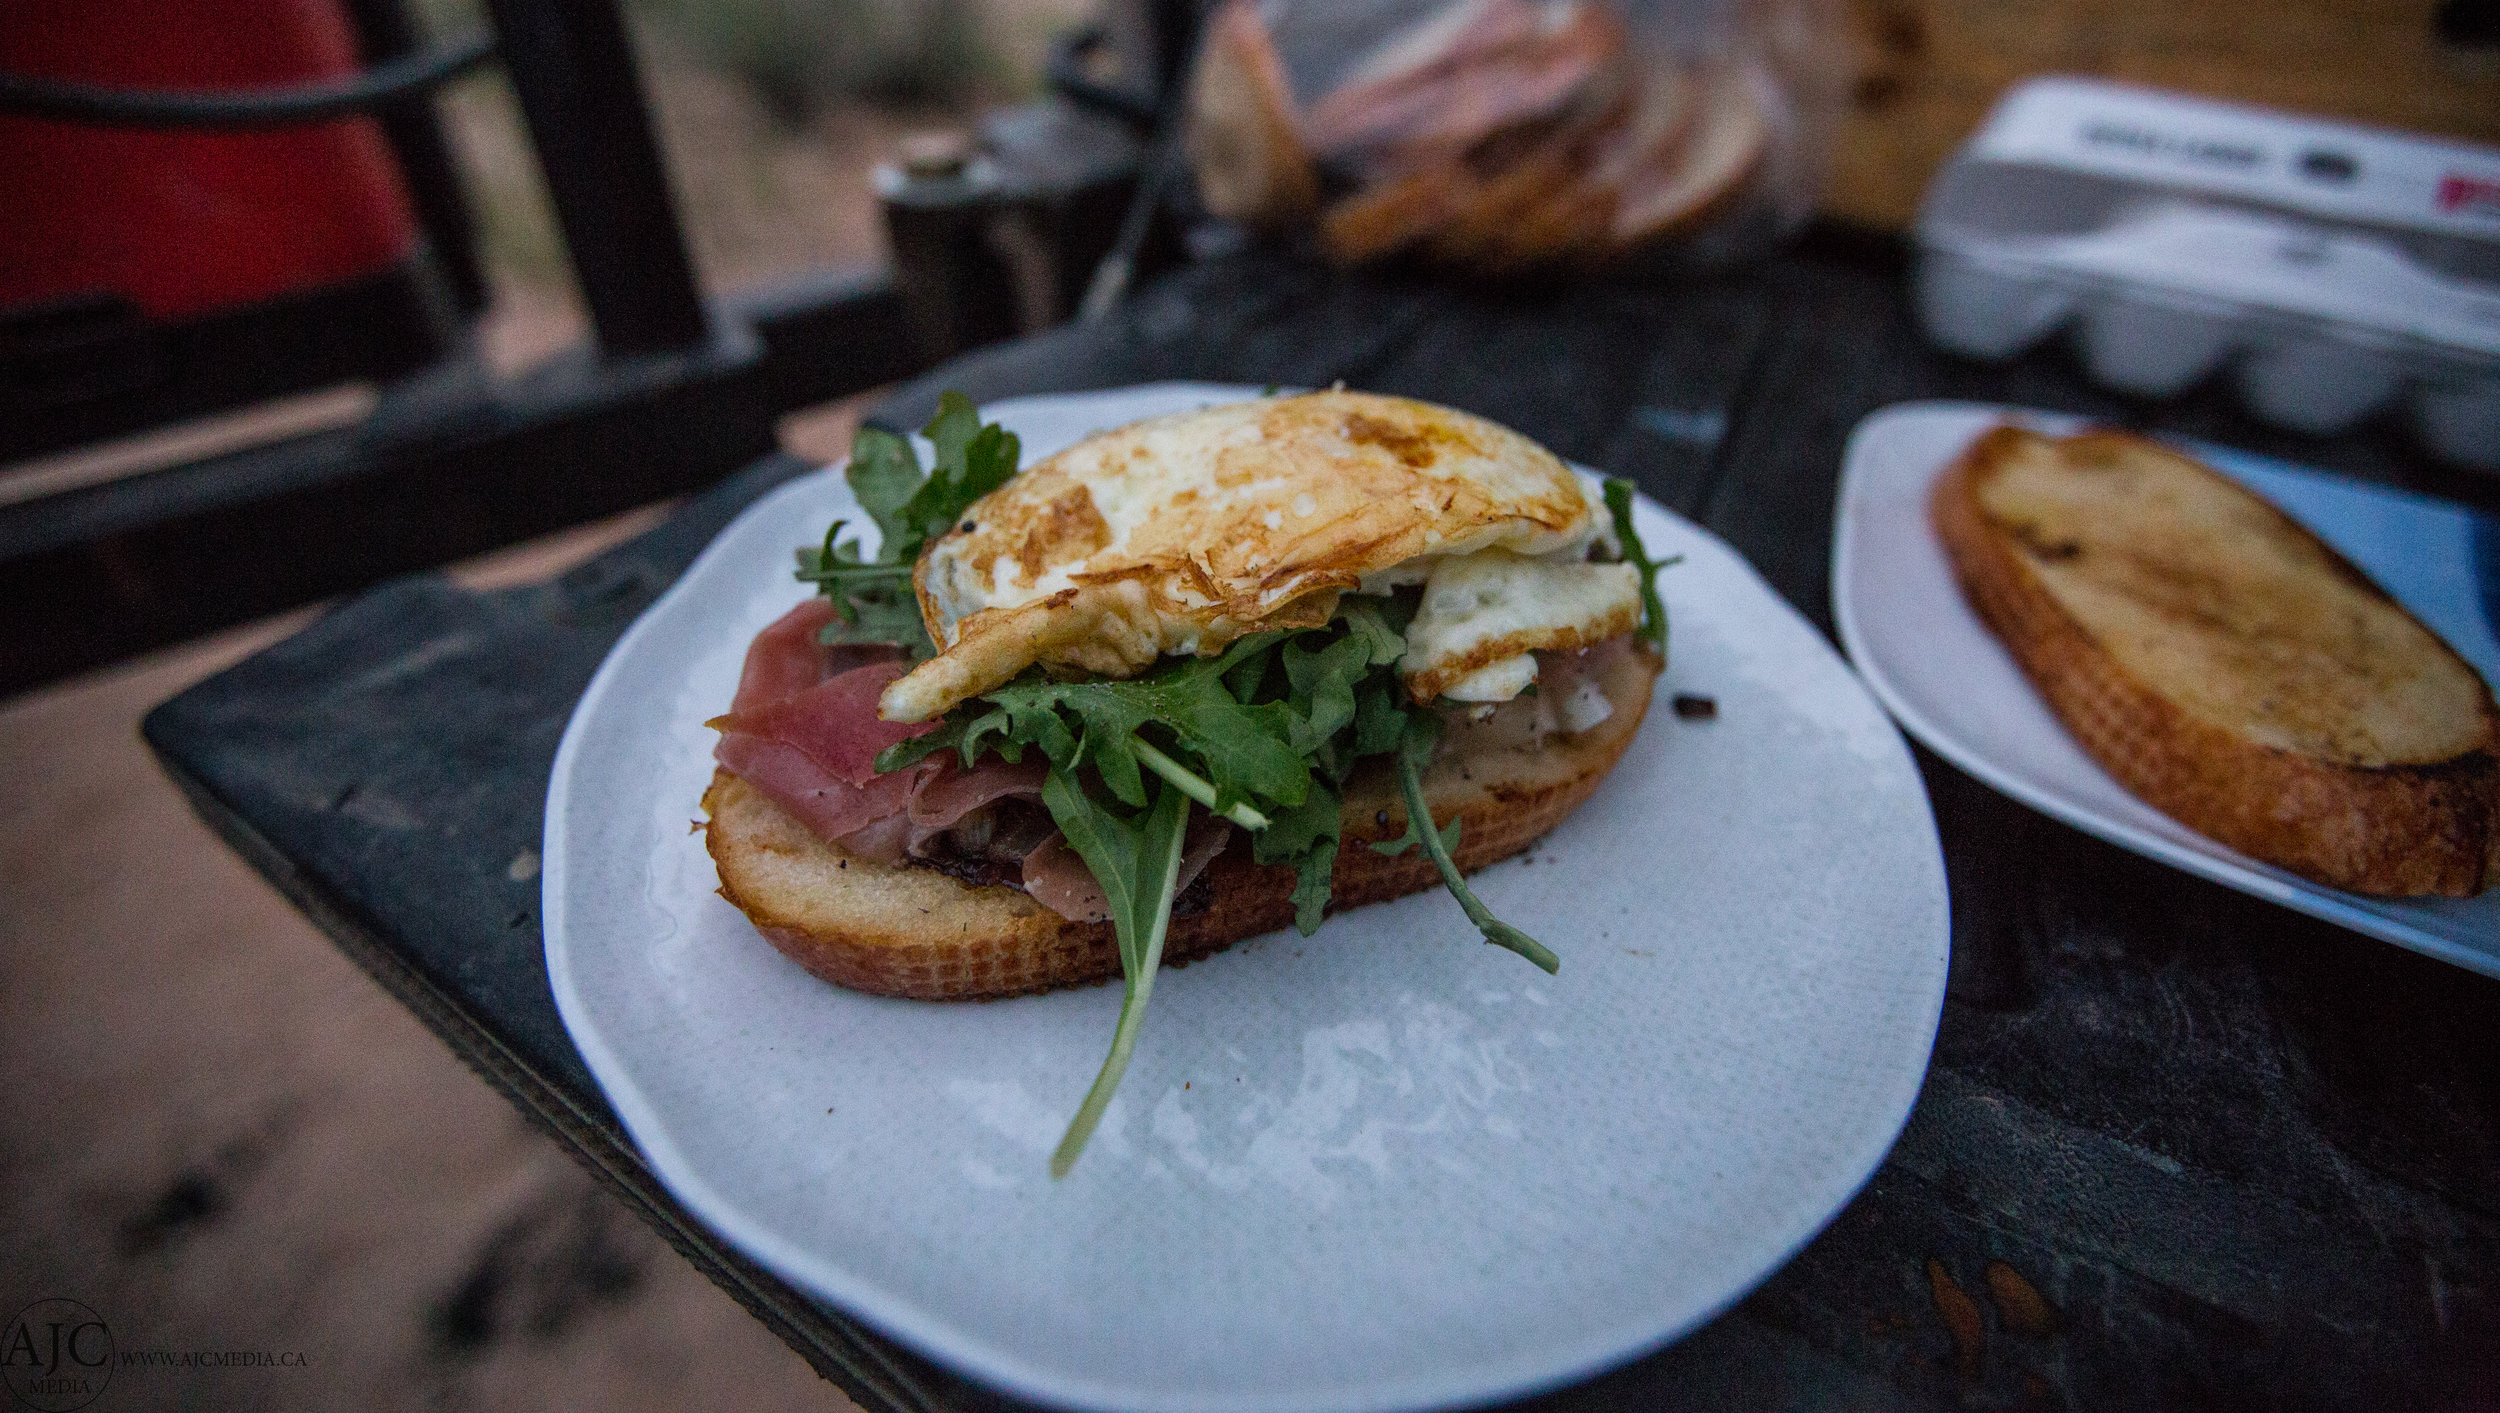 Caramelized Onion Brunch Sandwich with Prosciutto, Brie, Arugula and a cracked Egg (Serves 2)